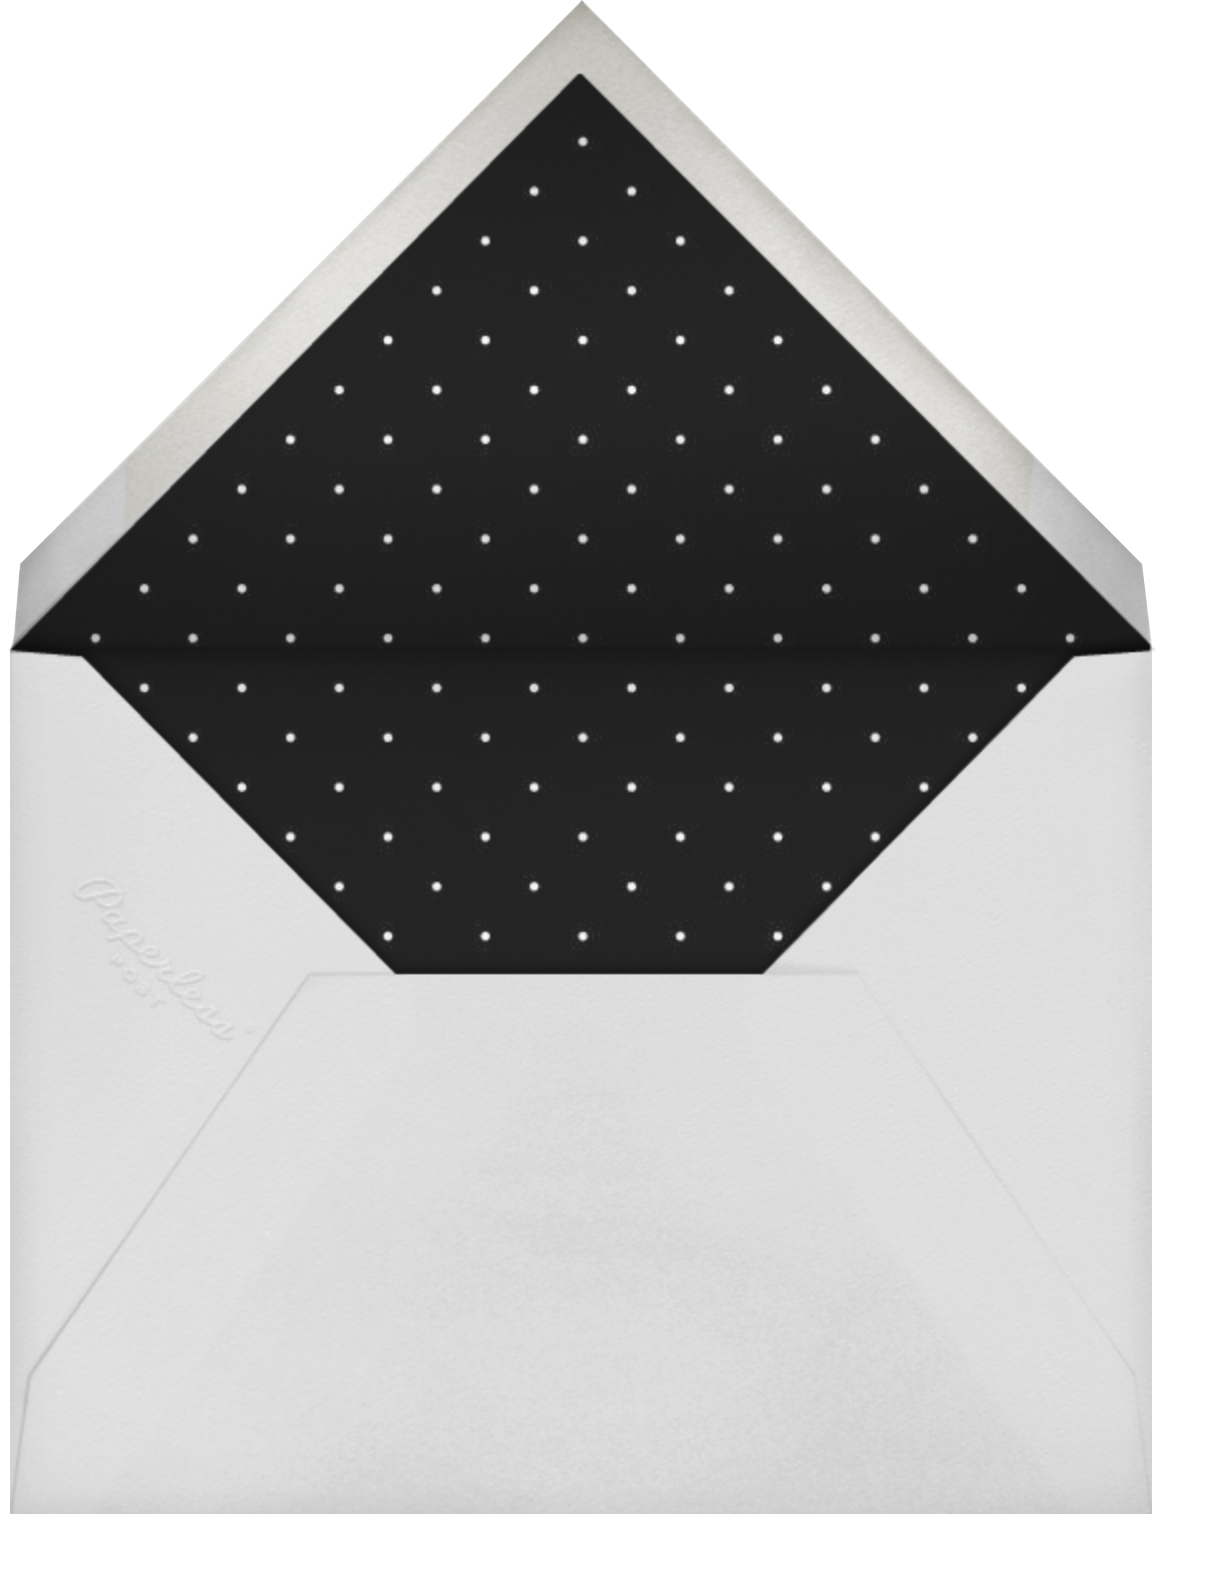 Editorial II (Stationery) - White/Silver - Paperless Post - General - envelope back